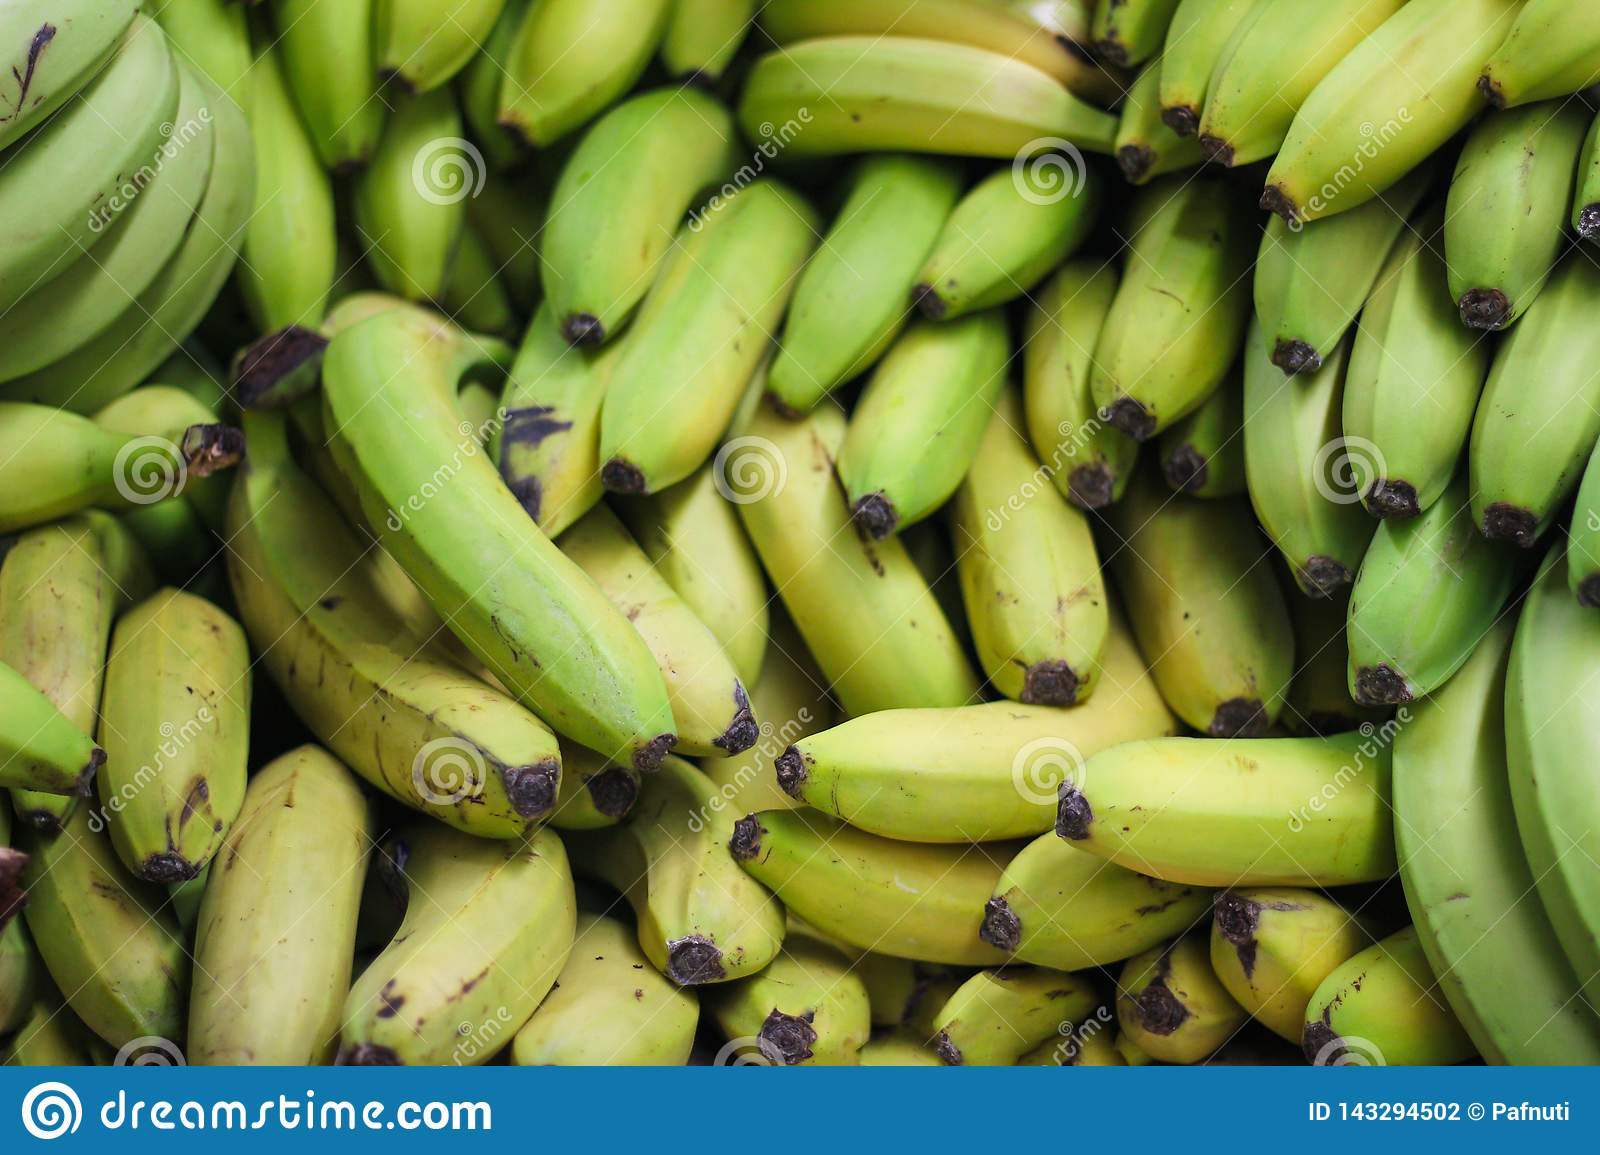 Pile of green bananas on the farmers market or shop